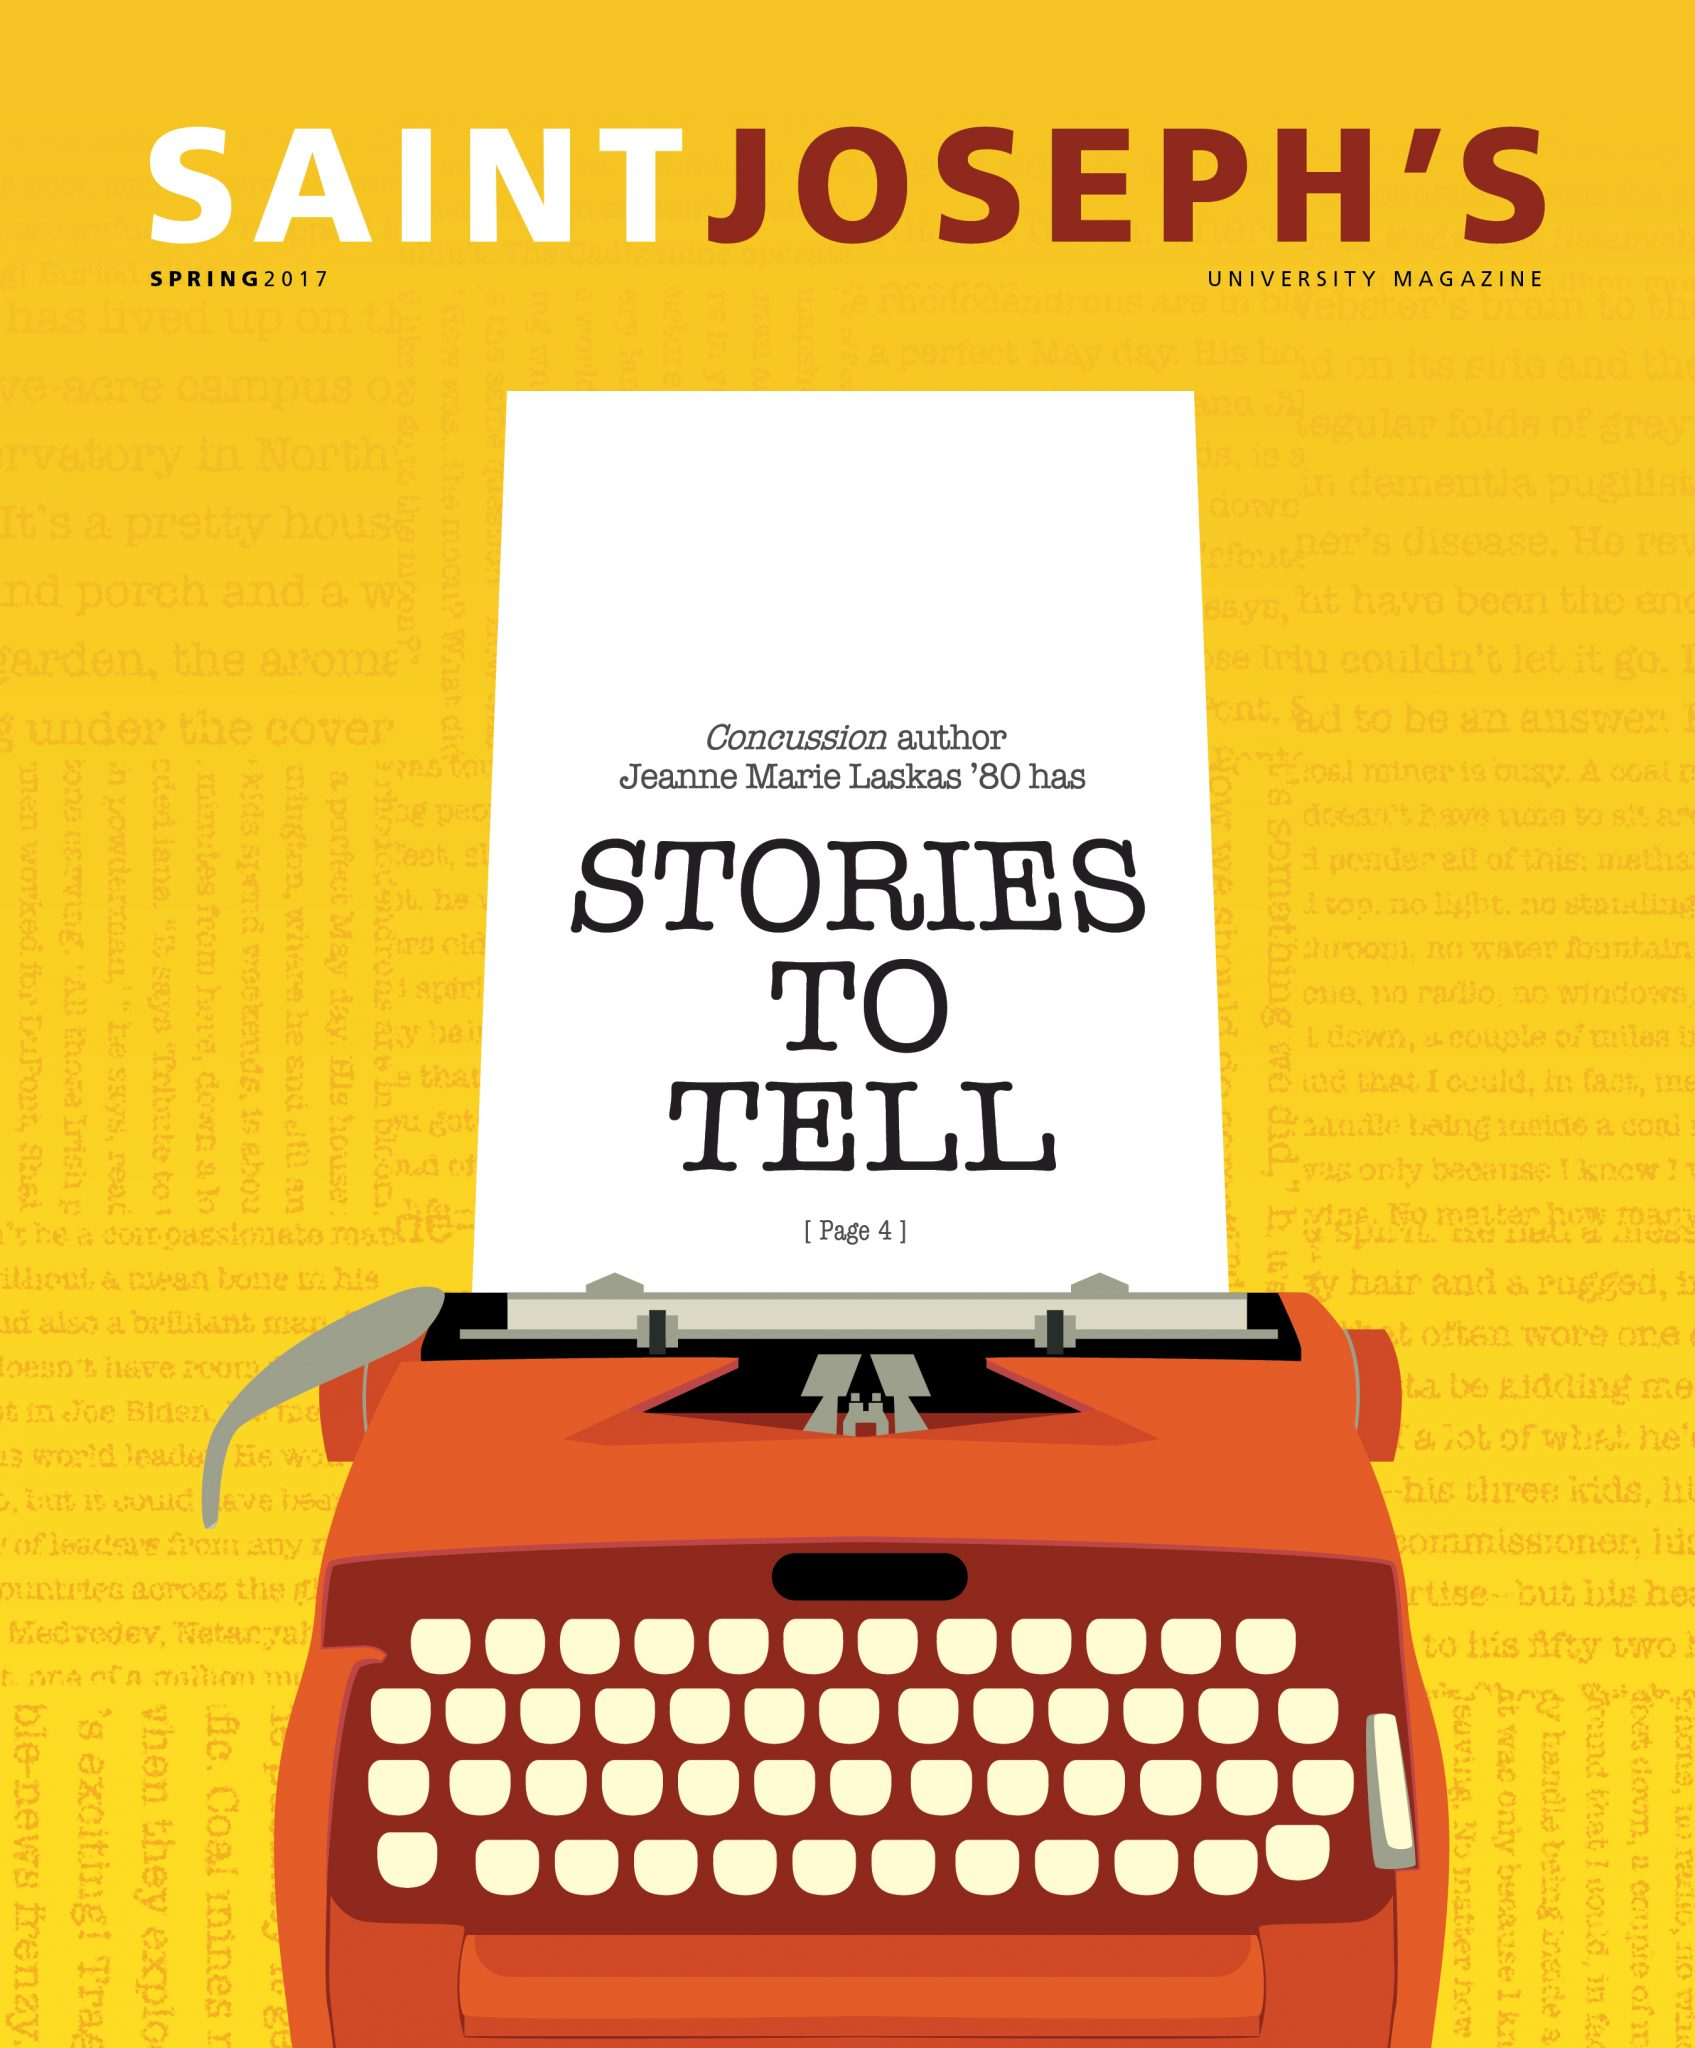 Spring 2017 Saint Joseph's University Magazine Cover